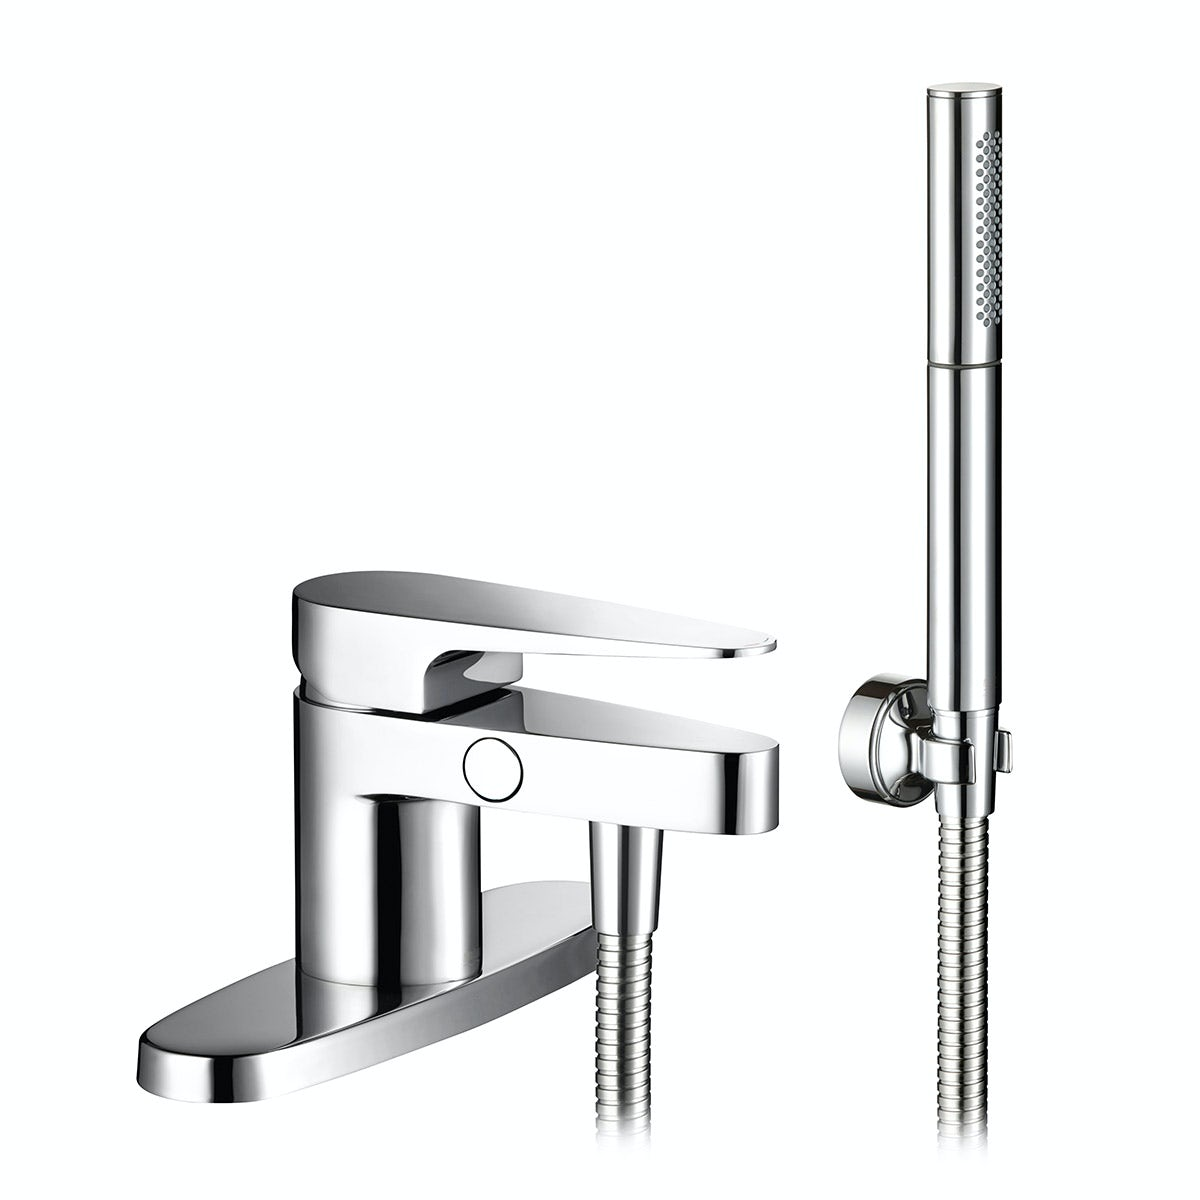 28 mira bath shower mixer mira extra bsm sequential bath mira bath shower mixer mira precision bath shower mixer tap victoriaplum com